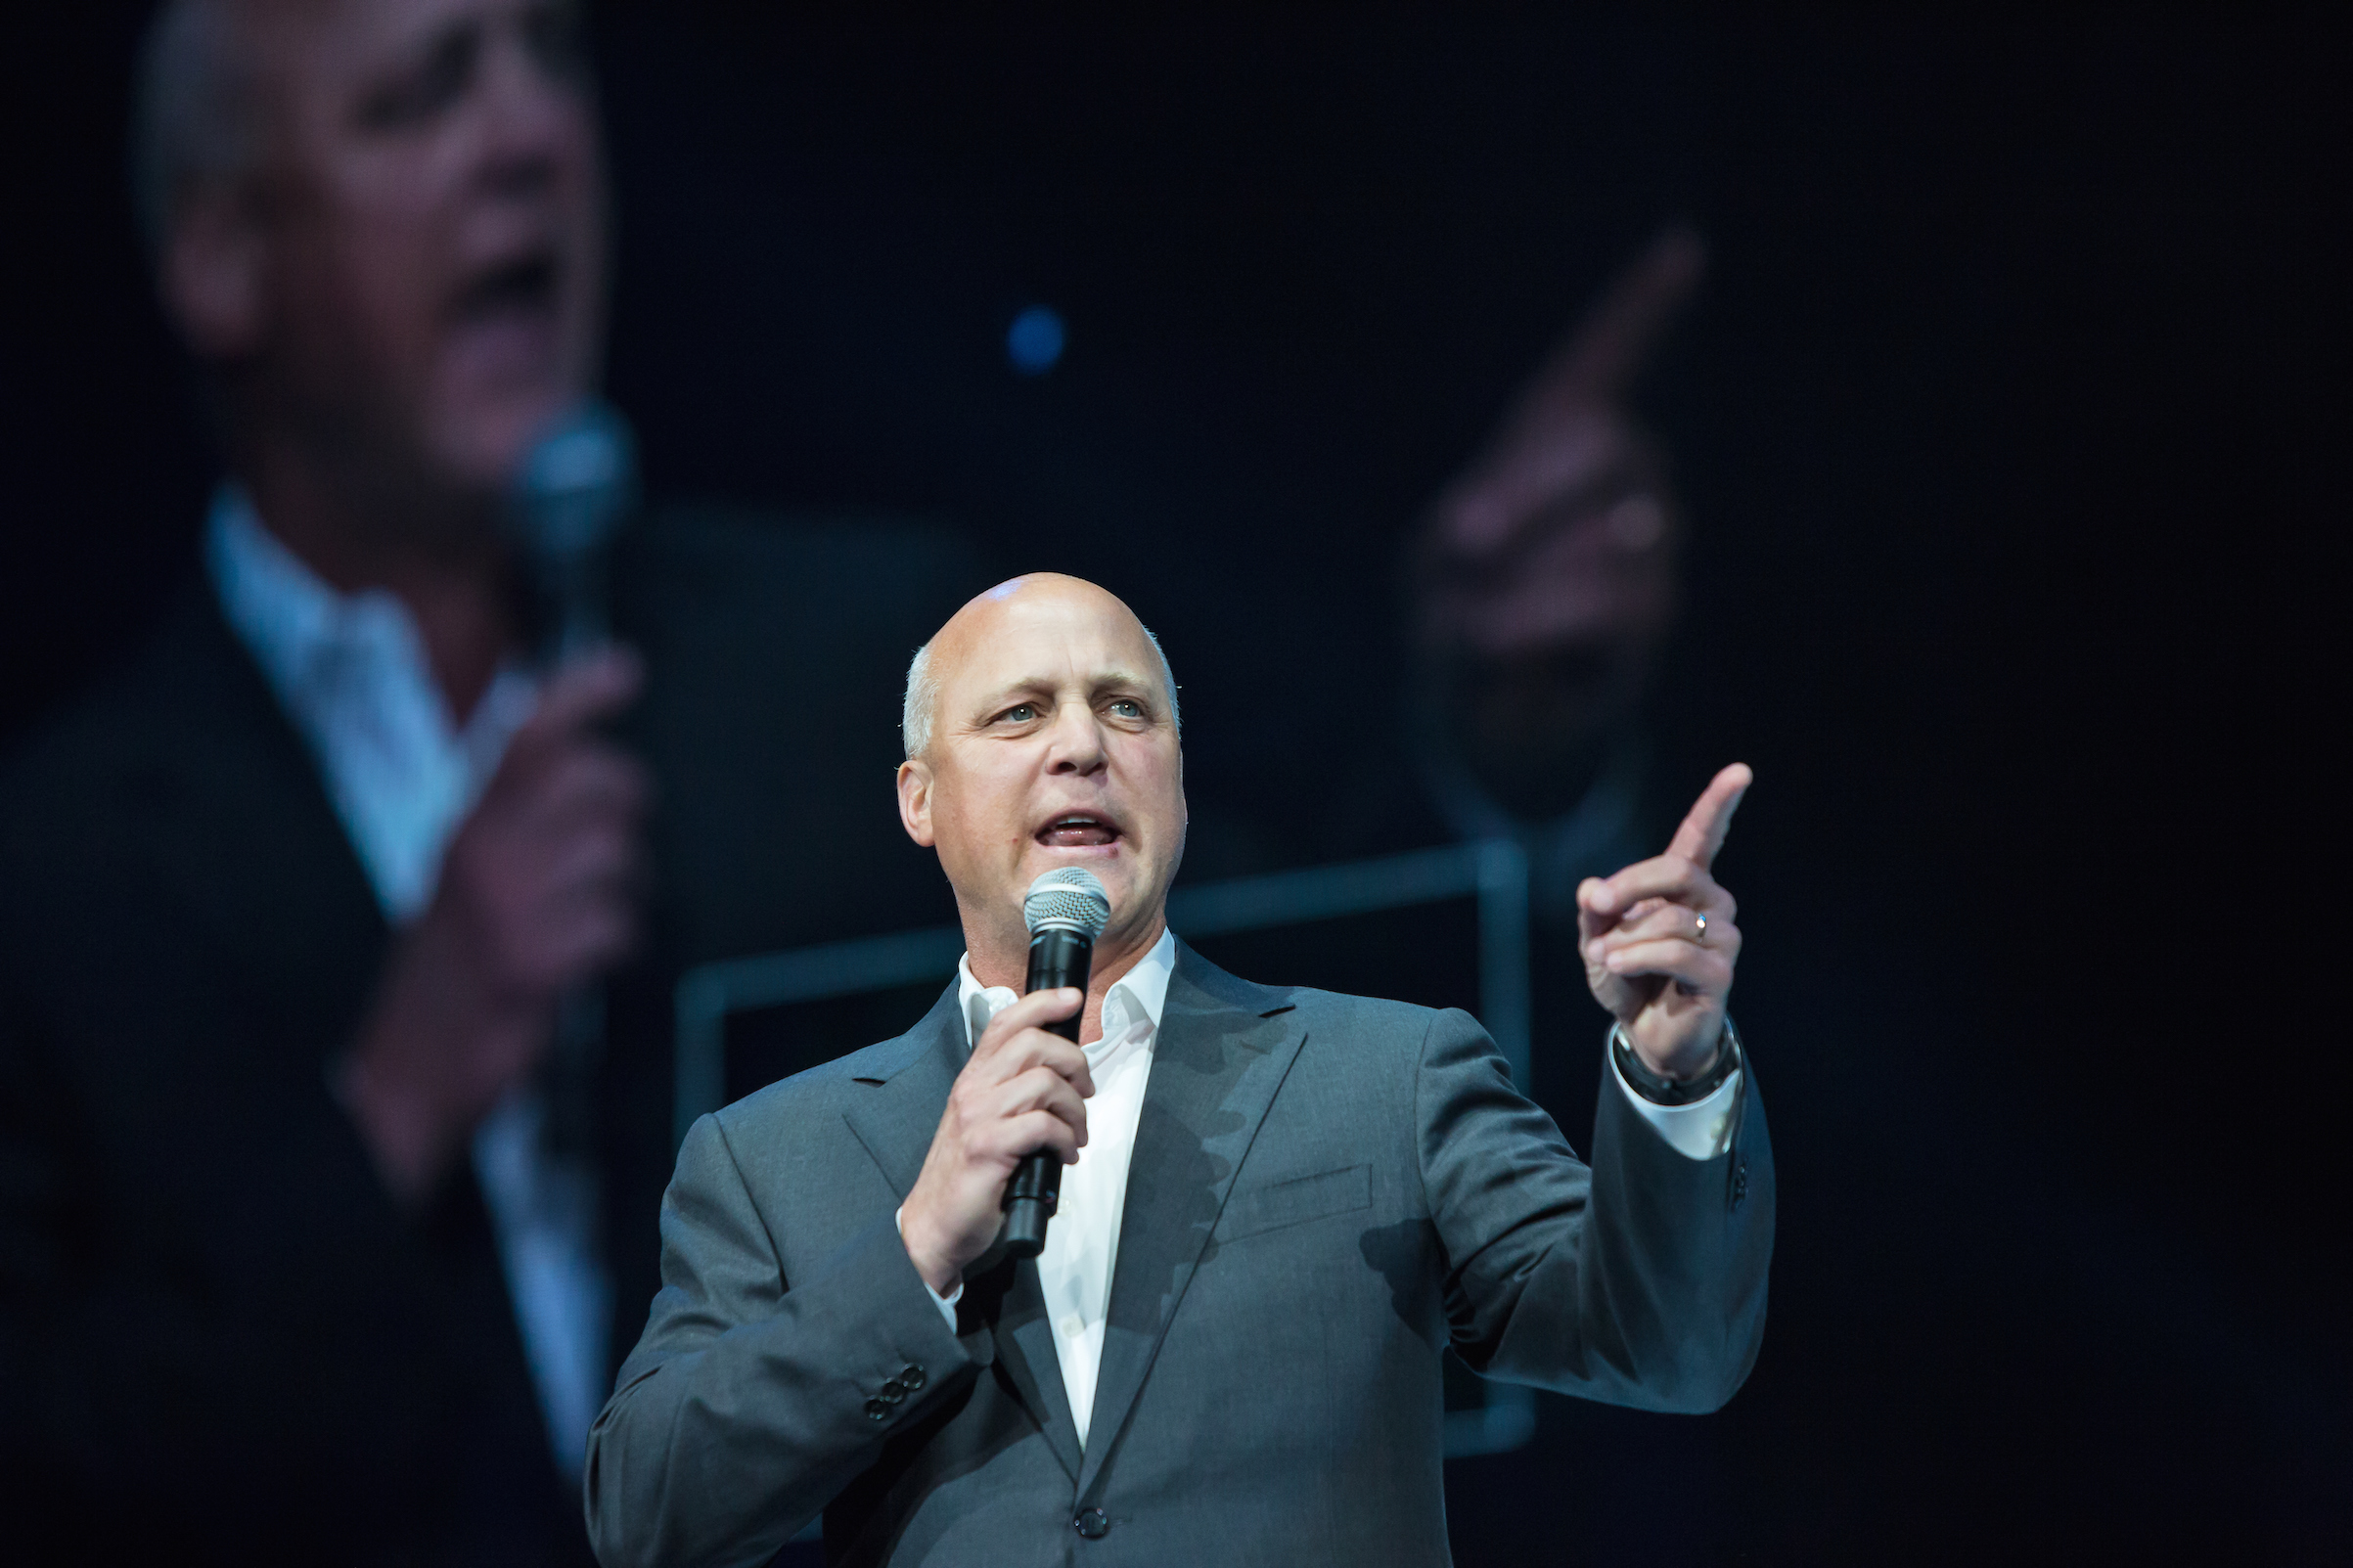 New Orleans Mayor Mitch Landrieu addresses a crowd during an event marking the 10-year anniversary of Hurricane Katrina on Aug. 29, 2015, in New Orleans